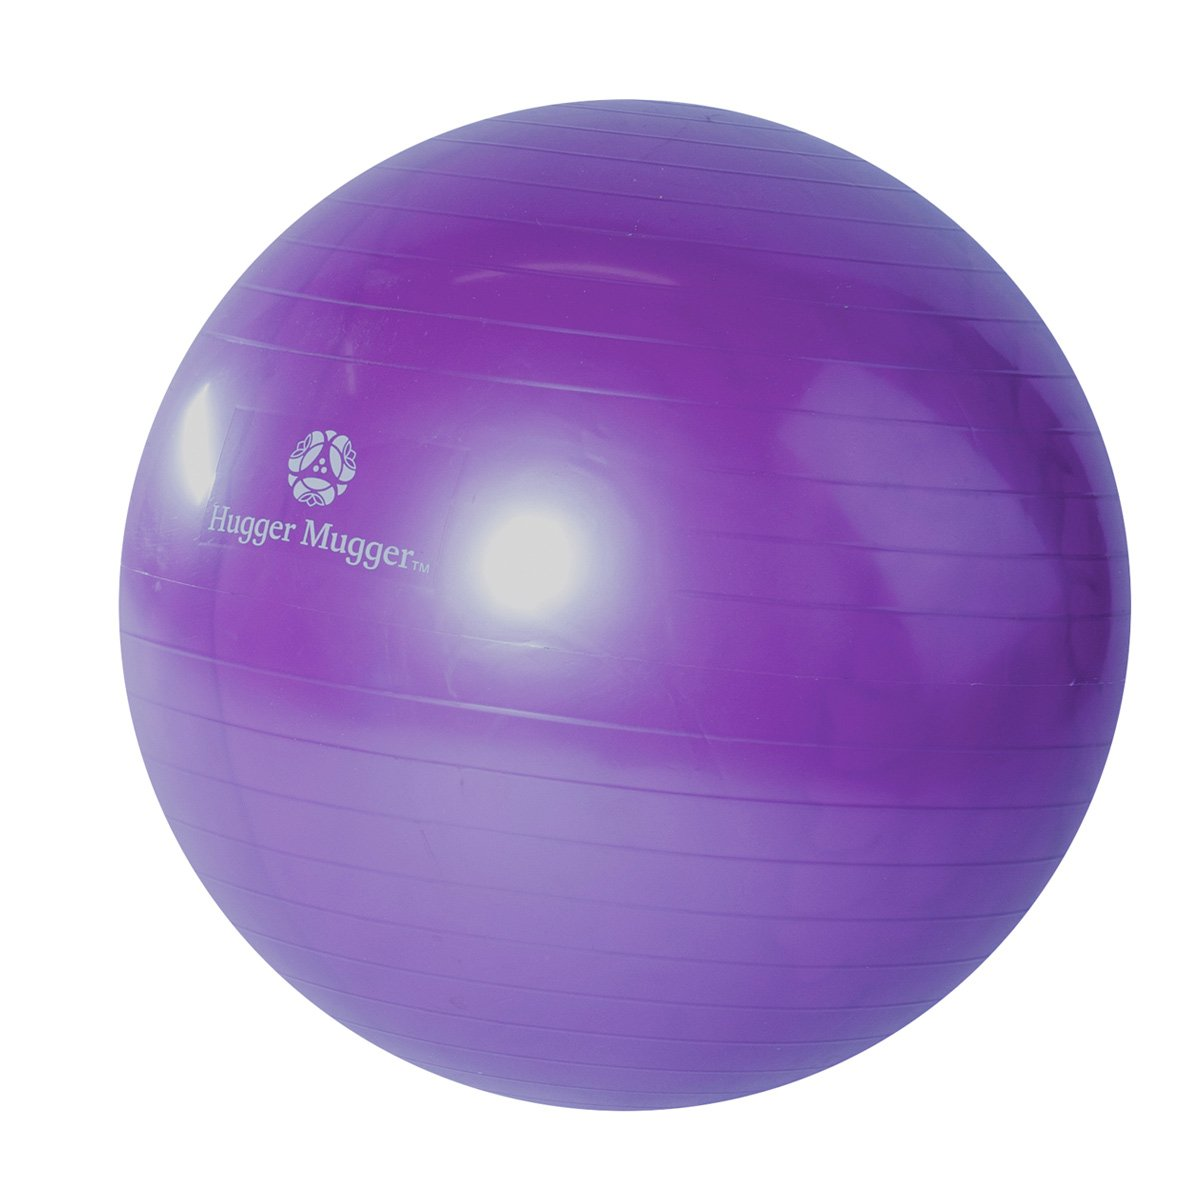 Hugger Mugger Yoga Exercise Ball (Purple, 65mm)